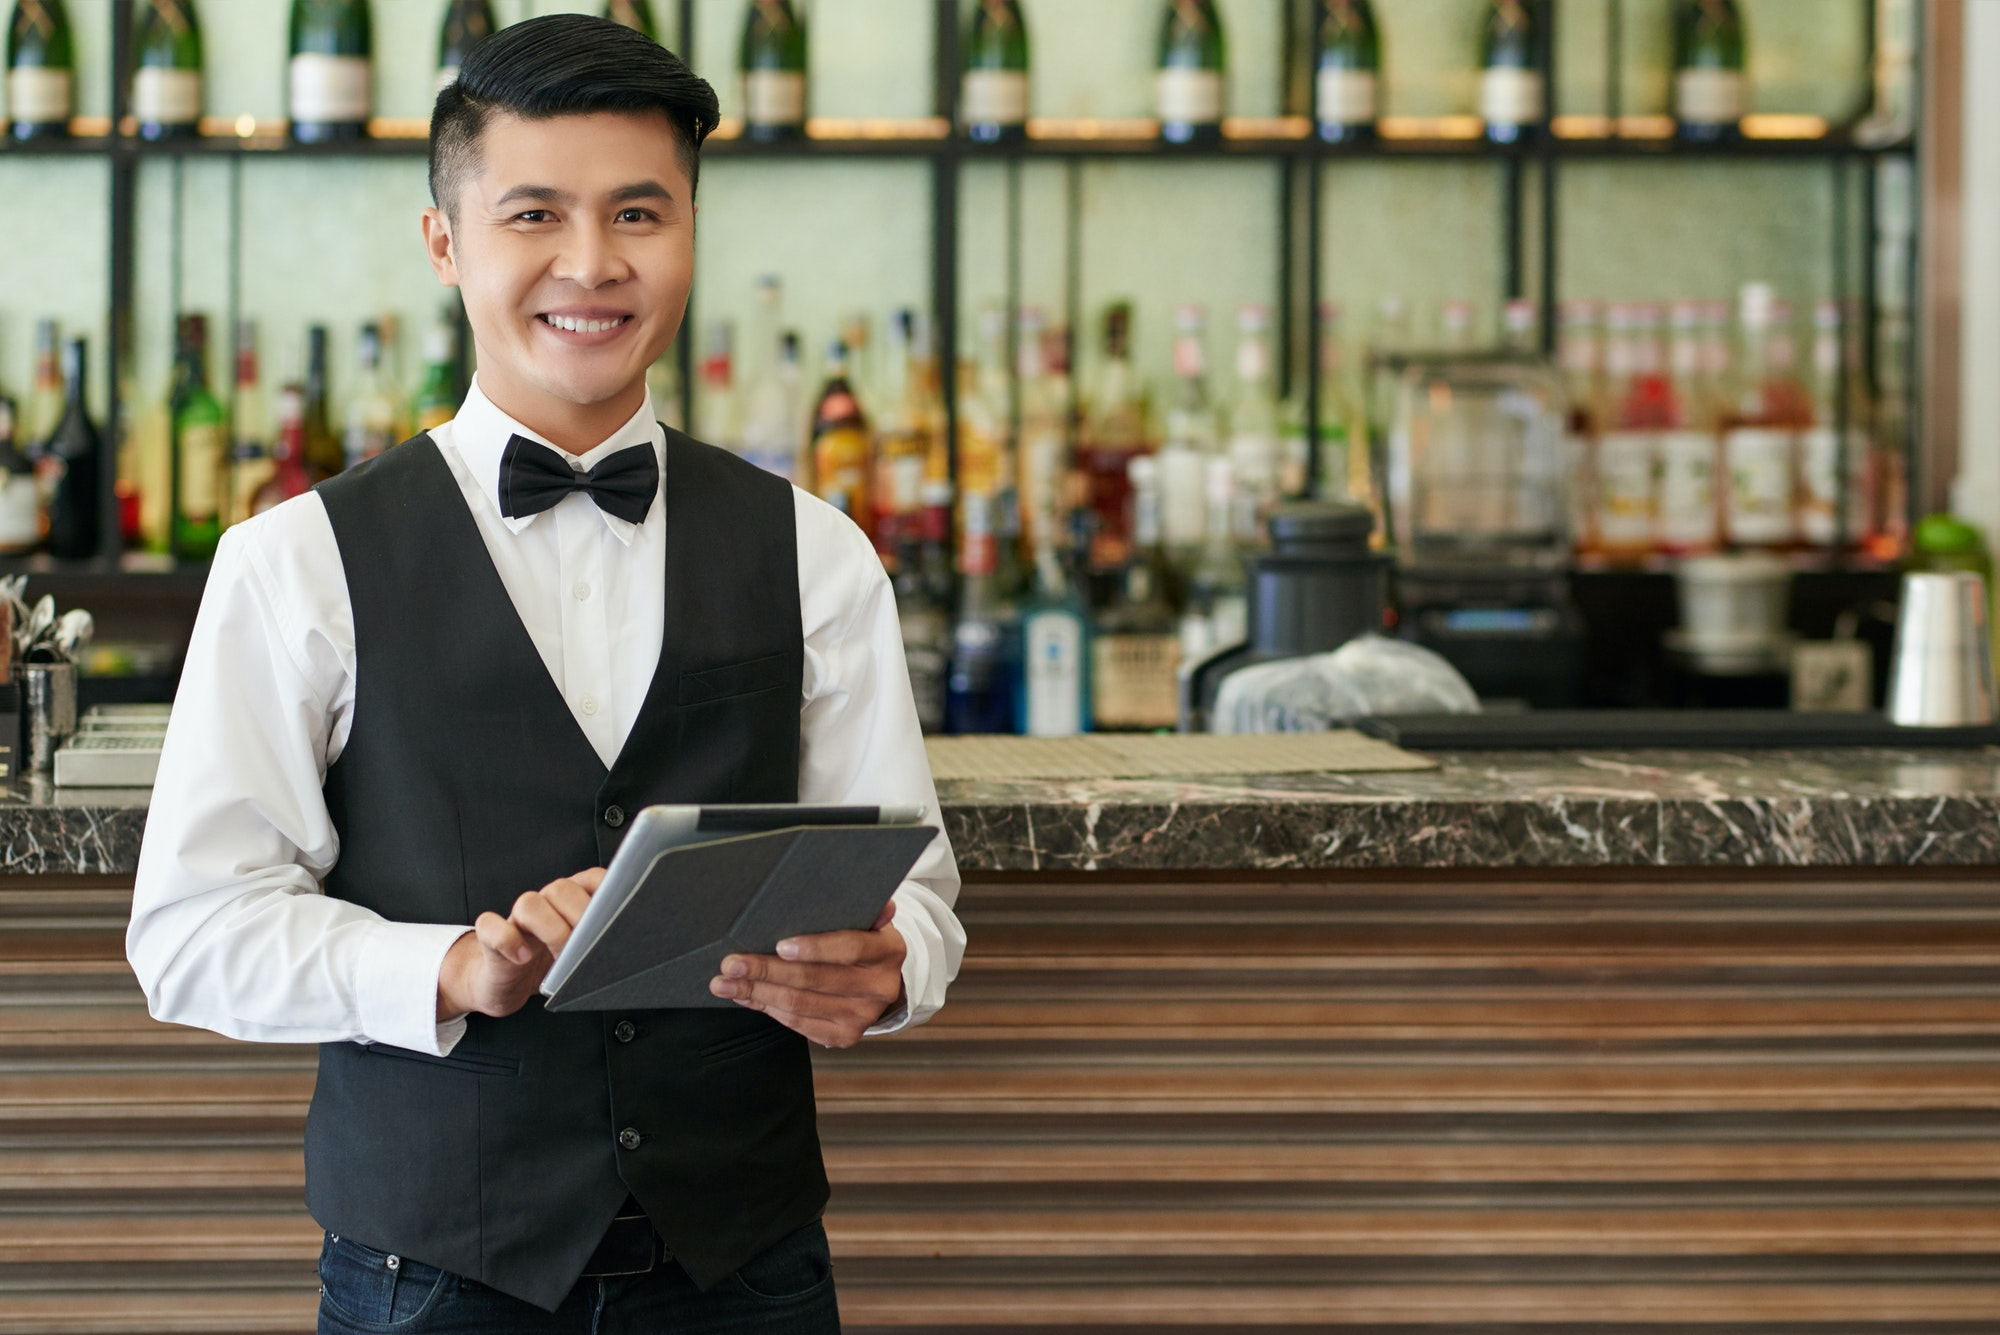 Cheerful waiter